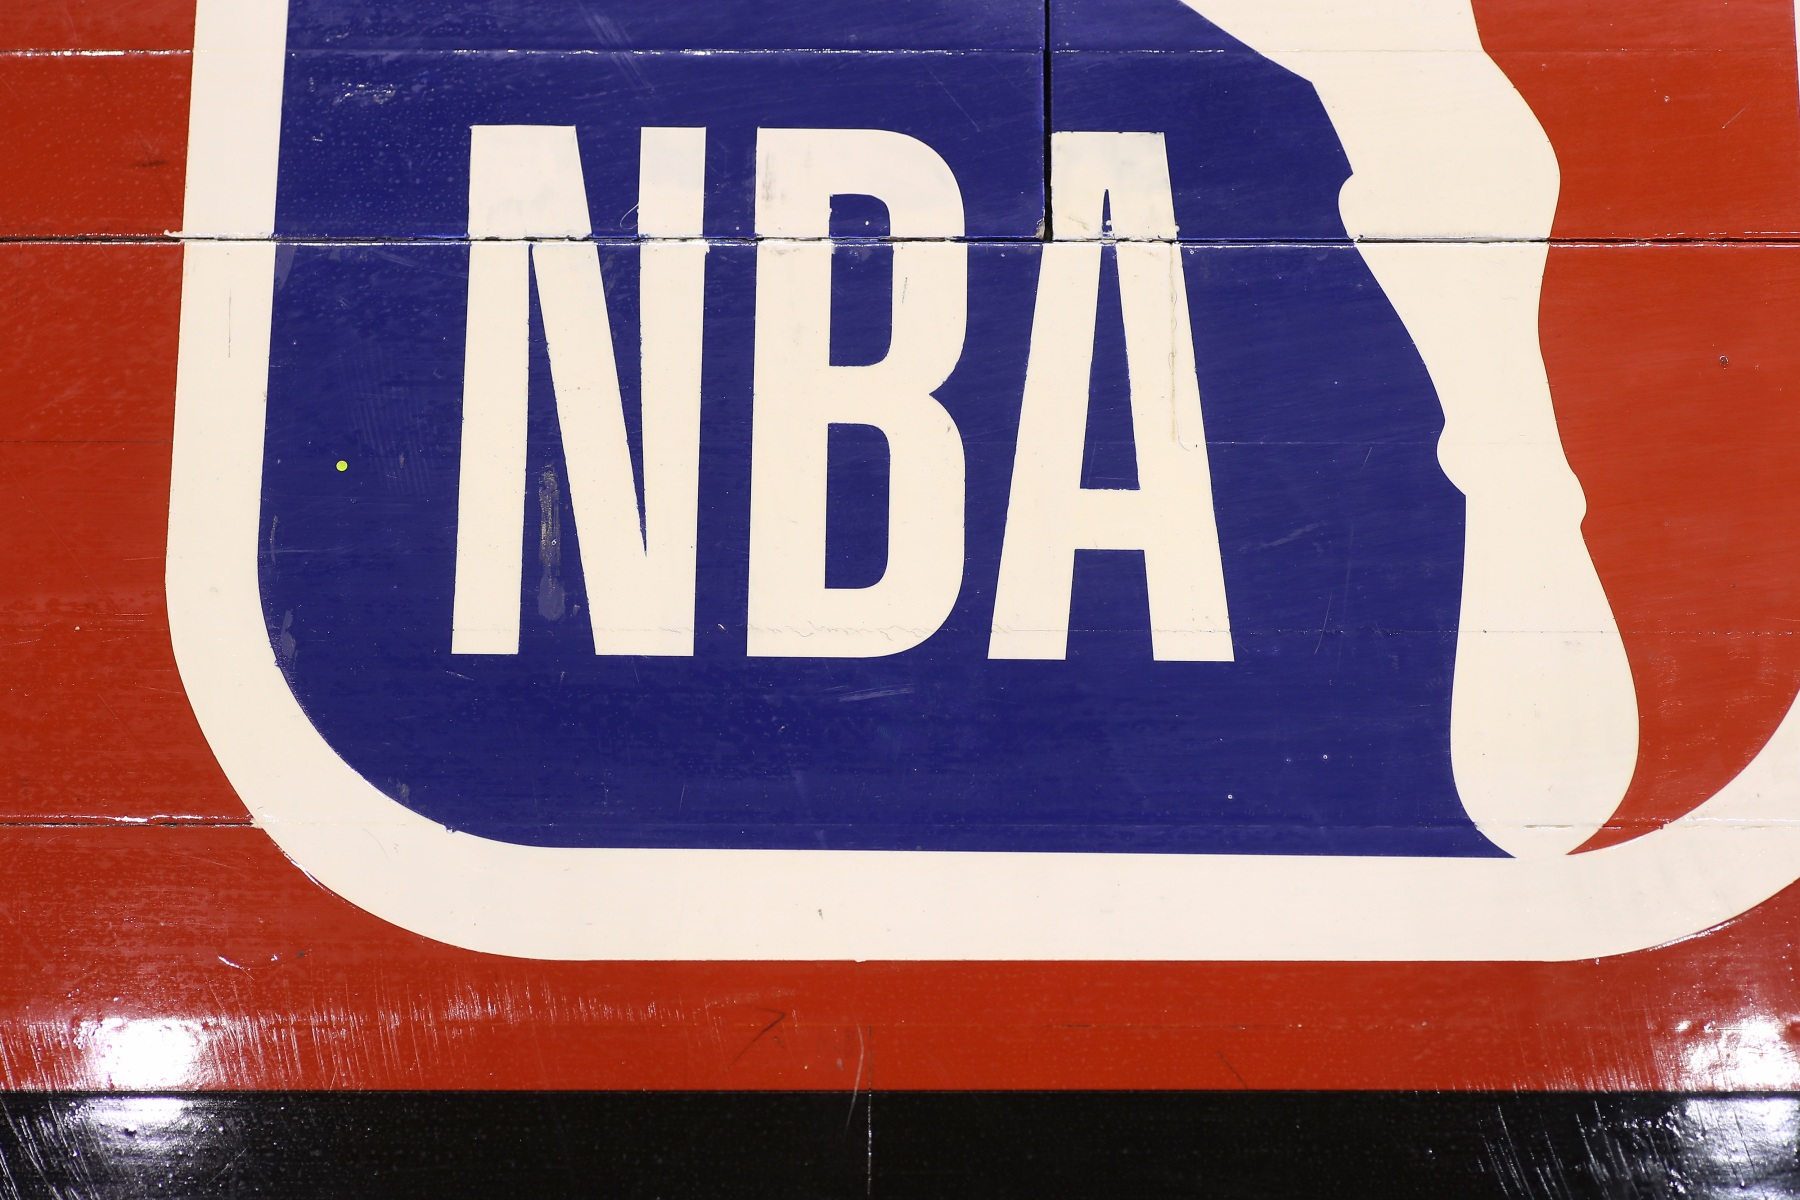 A detailed view of the NBA logo painted on the wooden floor boards of the court